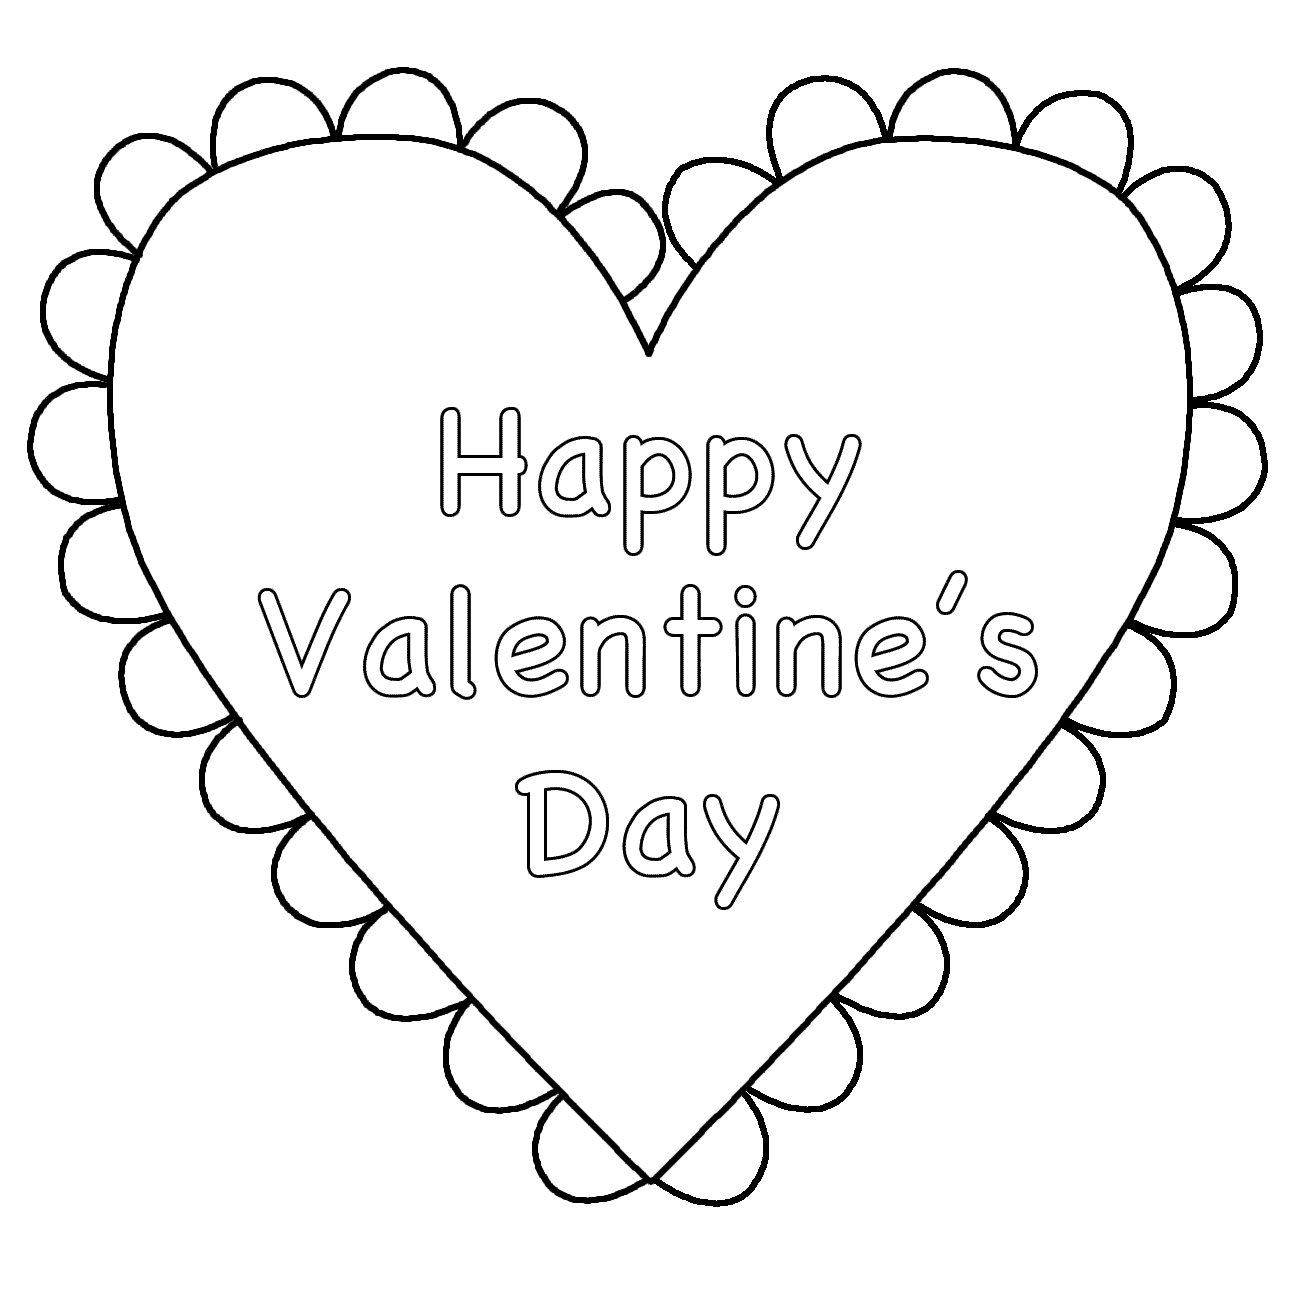 Valentine Heart Coloring Pages Best Coloring Pages For Kids Valentine Coloring Pages Valentines Day Coloring Page Printable Valentines Coloring Pages